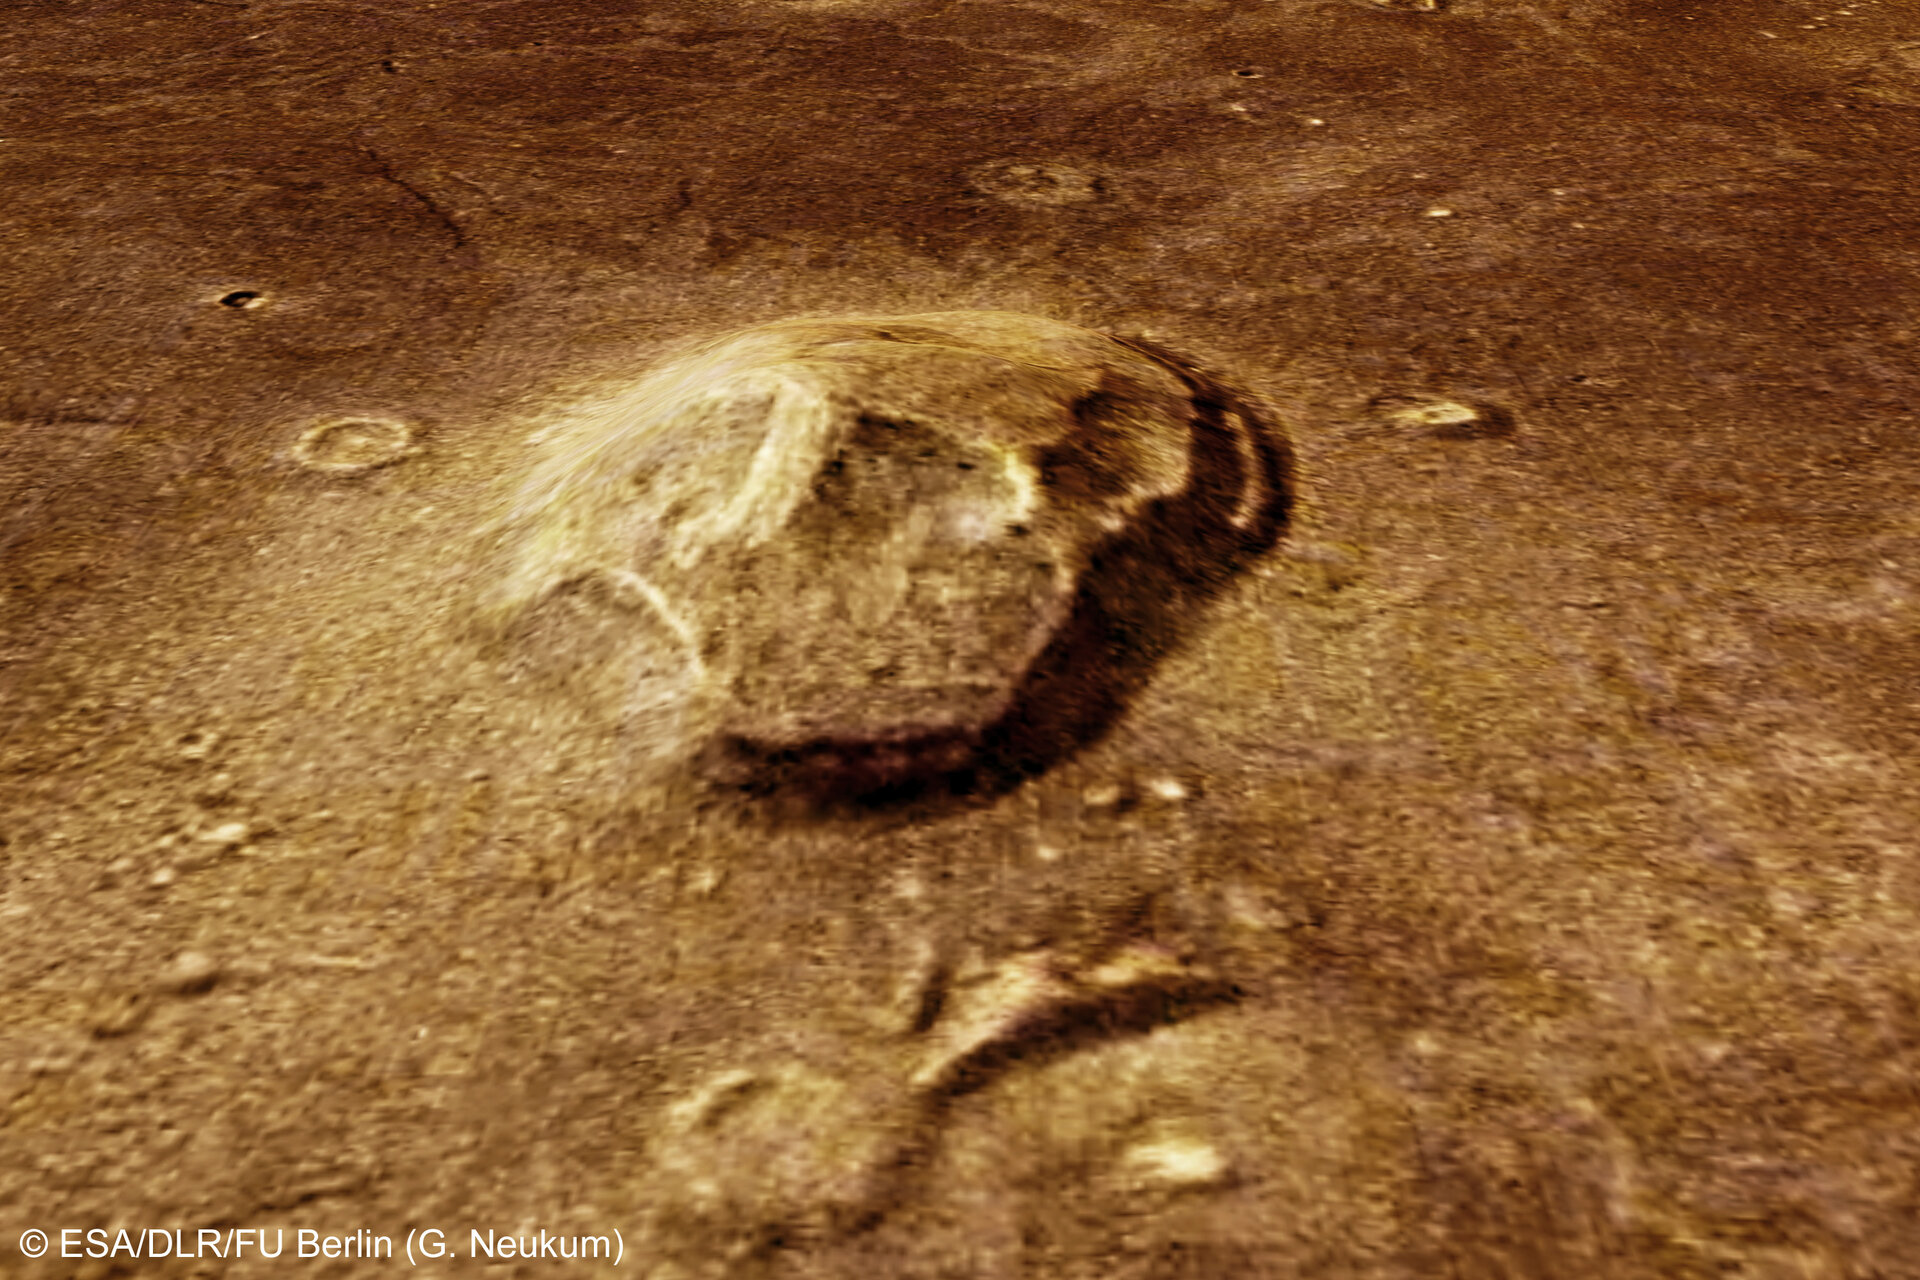 Naturally 'skull-shaped' formation in Cydonia region